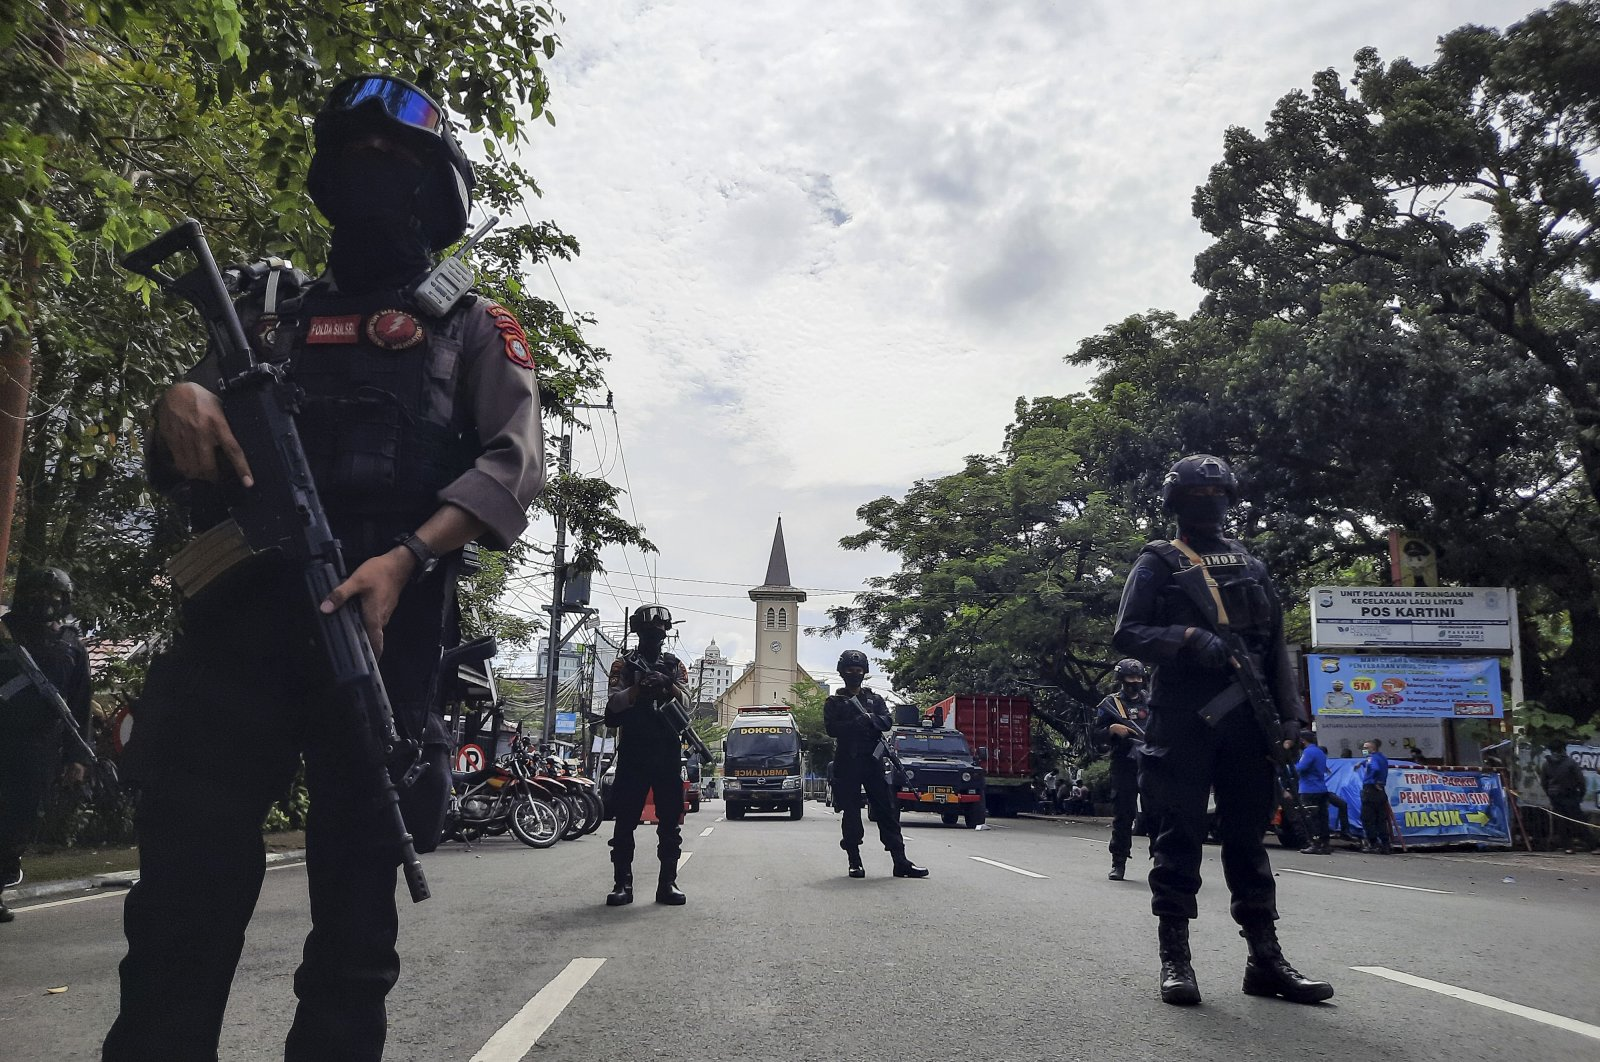 Police officers stand guard near the Sacred Heart of Jesus Cathedral in the aftermath of an explosion in Makassar, South Sulawesi, Indonesia, March 28, 2021. (EPA Photo)